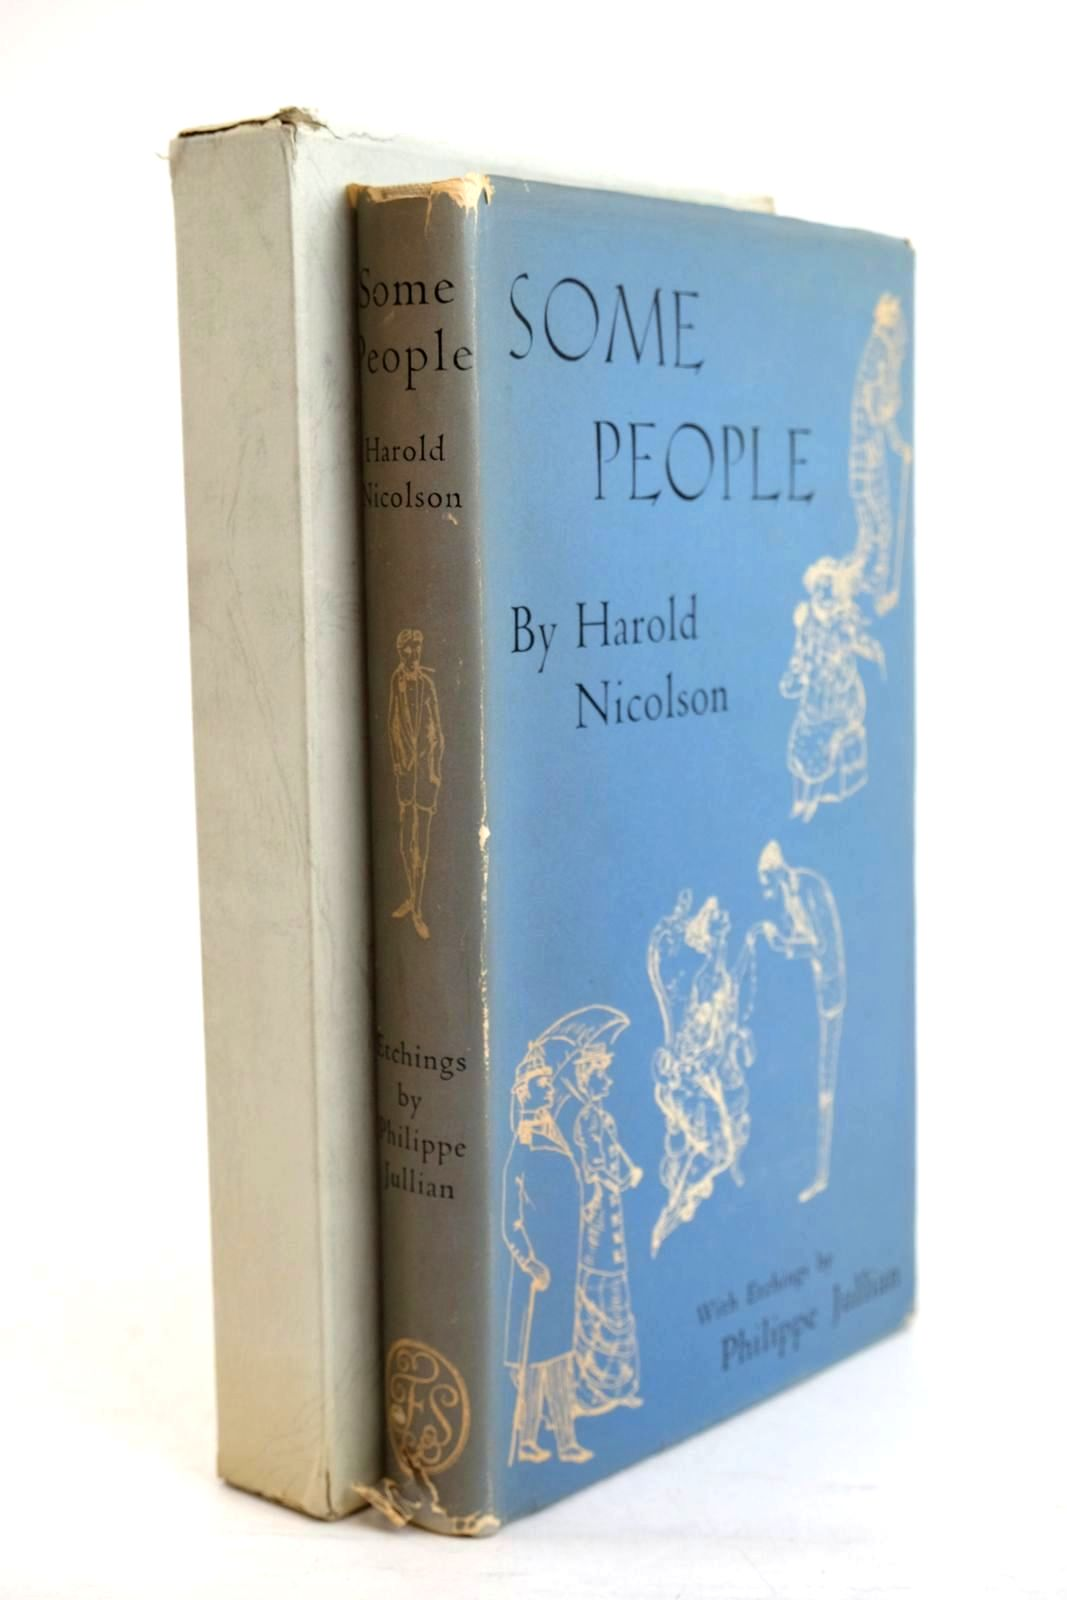 Photo of SOME PEOPLE written by Nicolson, Harold illustrated by Jullian, Philippe published by Folio Society (STOCK CODE: 1320530)  for sale by Stella & Rose's Books